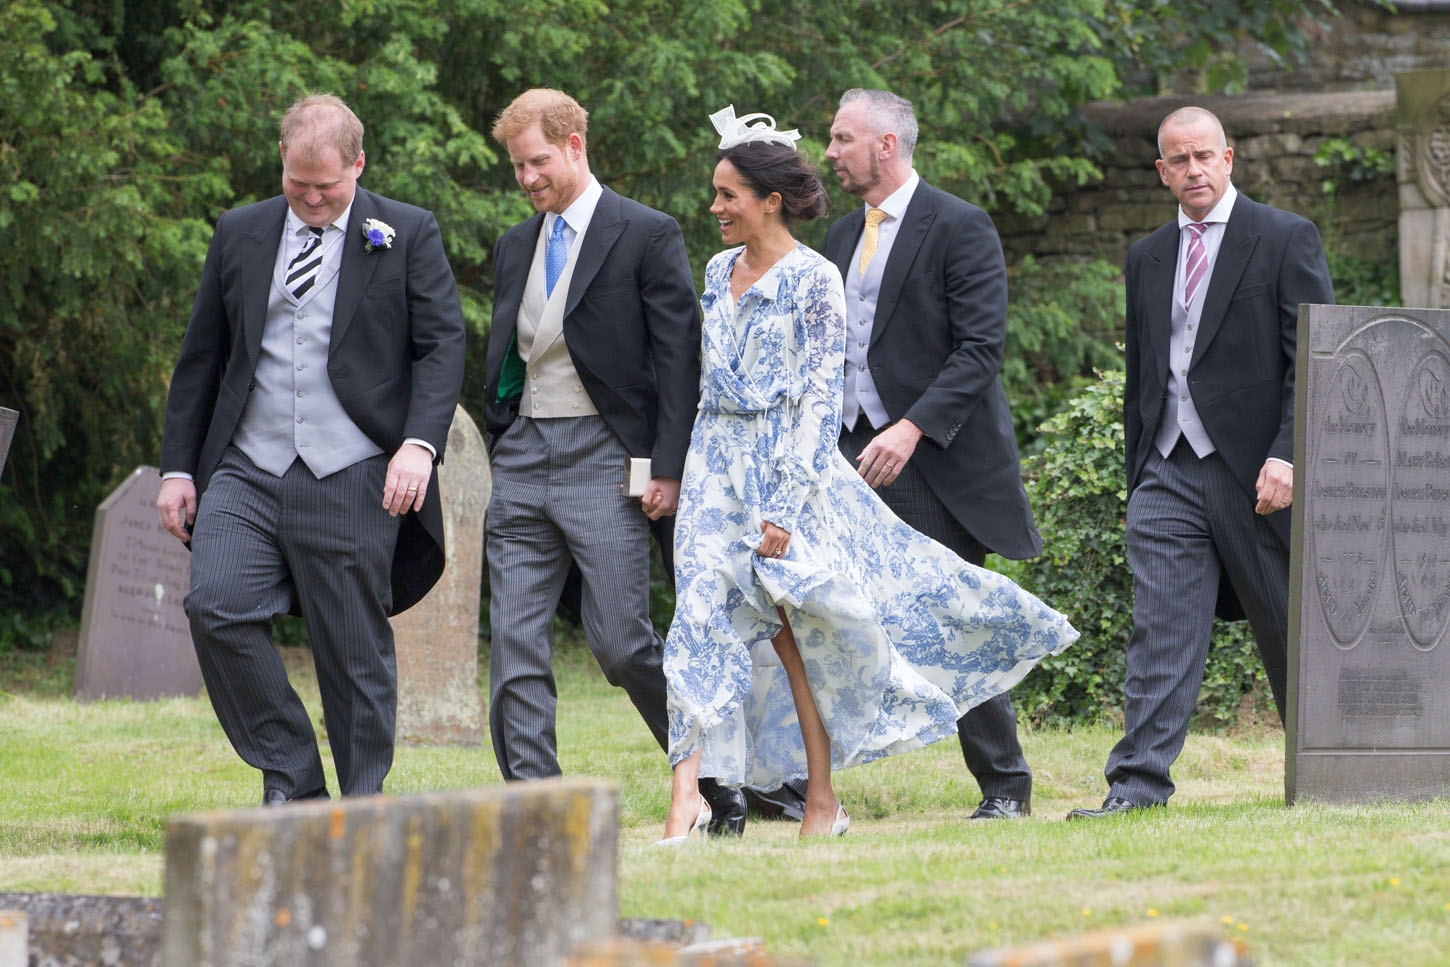 Meghan Markle and Prince Harry arriving for the wedding of Celia McCorquodale in Stoke Rochford, UK.  Meghan Markle and Prince Harry were seen smiling and laughing yesterday as they attended his cousin's wedding - with the bride wearing Princess Diana's tiara.  The new Duchess of Sussex stunned in a long-sleeved blue-and-white paisley shirt dress and white fascinator at the wedding of Princess Diana's niece, Celia McCorquodale - exactly four weeks after her big day.  Celia, who is the younger daughter of the Princess of Wales' sister Lady Sarah McCorquodale, looked beautiful in a lace-bodiced dress and a full veil, held in place by the stunning diamond tiara worn by Princess Diana at her wedding to Prince Charles in 1981.  Celia, 29, attended Prince Harry and Meghan's wedding exactly a month ago and she returned the favour by inviting the couple to her country wedding to George Woodhouse at St Andrew and St Mary's Church in Stoke Rochford, Lincolnshire.  Harry and Meghan looked delighted to be at the occasion as they arrived at the pretty country church holding hands and smiling and laughing with the other guests.  * No UK Papers Or Web * * OK For UK Mags After June 28th *  Pictured: Meghan Duchess of Sussex,Harry Duke of Sussex Ref: SPL5004400 160618 NON-EXCLUSIVE Picture by: Geoff Robinson Photography / SplashNews.com  Splash News and Pictures Los Angeles: 310-821-2666 New York: 212-619-2666 London: 0207 644 7656 Milan: +39 02 4399 8577 photodesk@splashnews.com  World Rights, No United Kingdom Rights